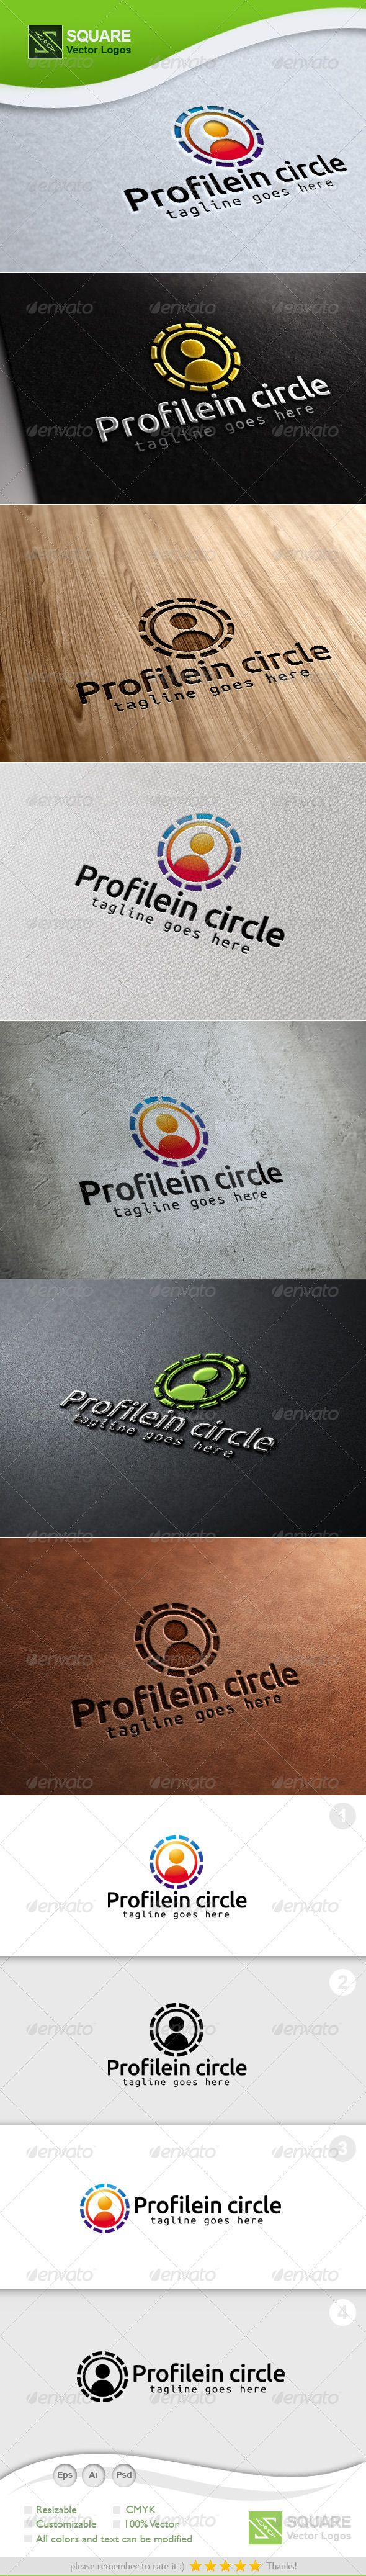 Circle, Human Vector Logo Template — Photoshop PSD #identity #customer • Available here → https://graphicriver.net/item/circle-human-vector-logo-template/7129545?ref=pxcr